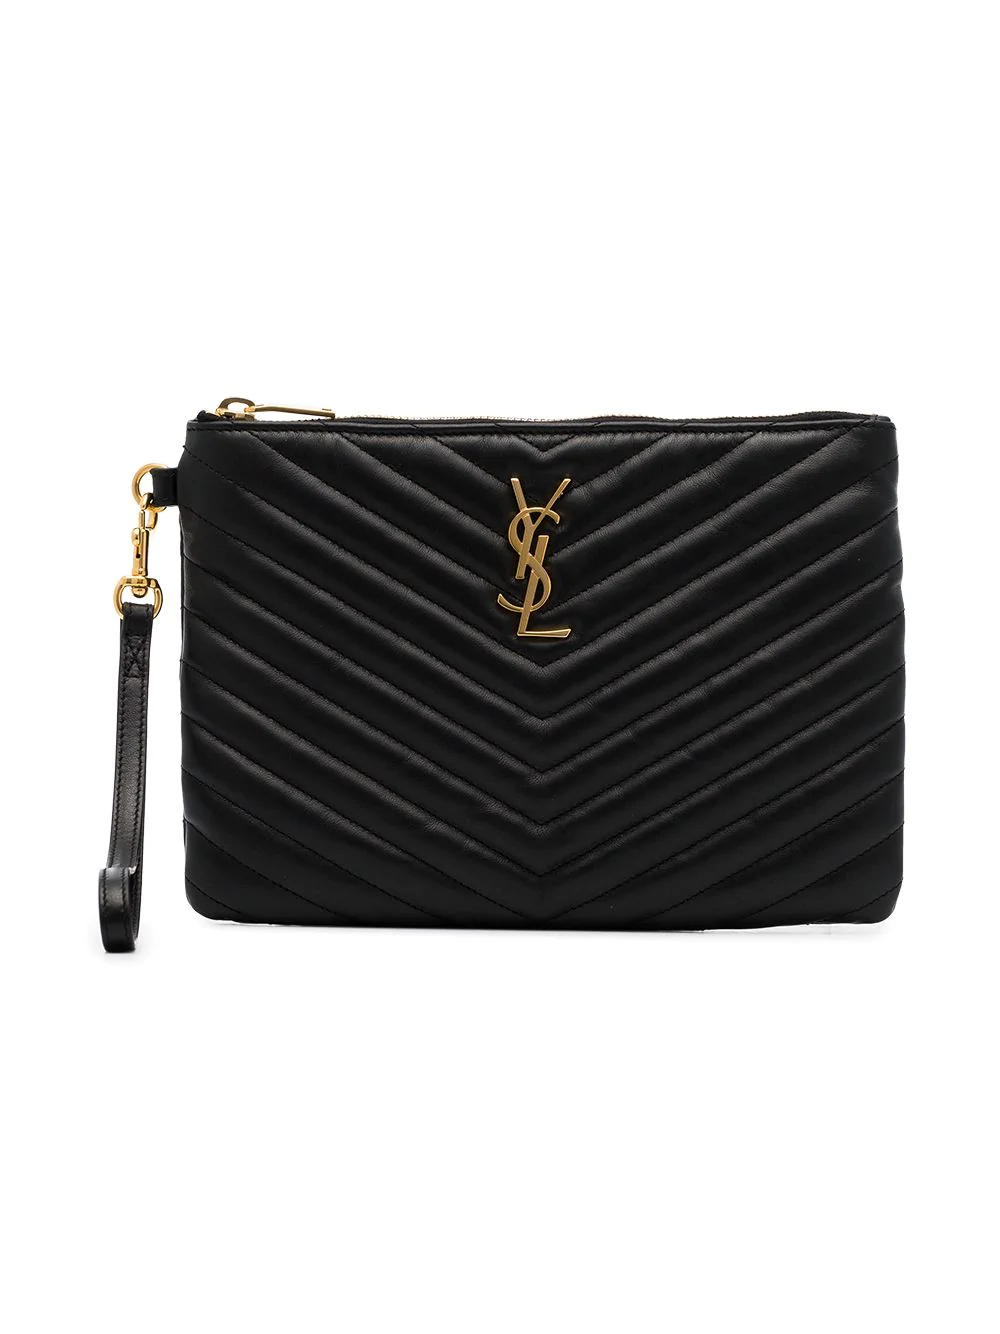 0e814533b311 Saint Laurent Monogram Ysl Small Chevron Quilted Zip-Top Pouch Bag - Golden  Hardware In